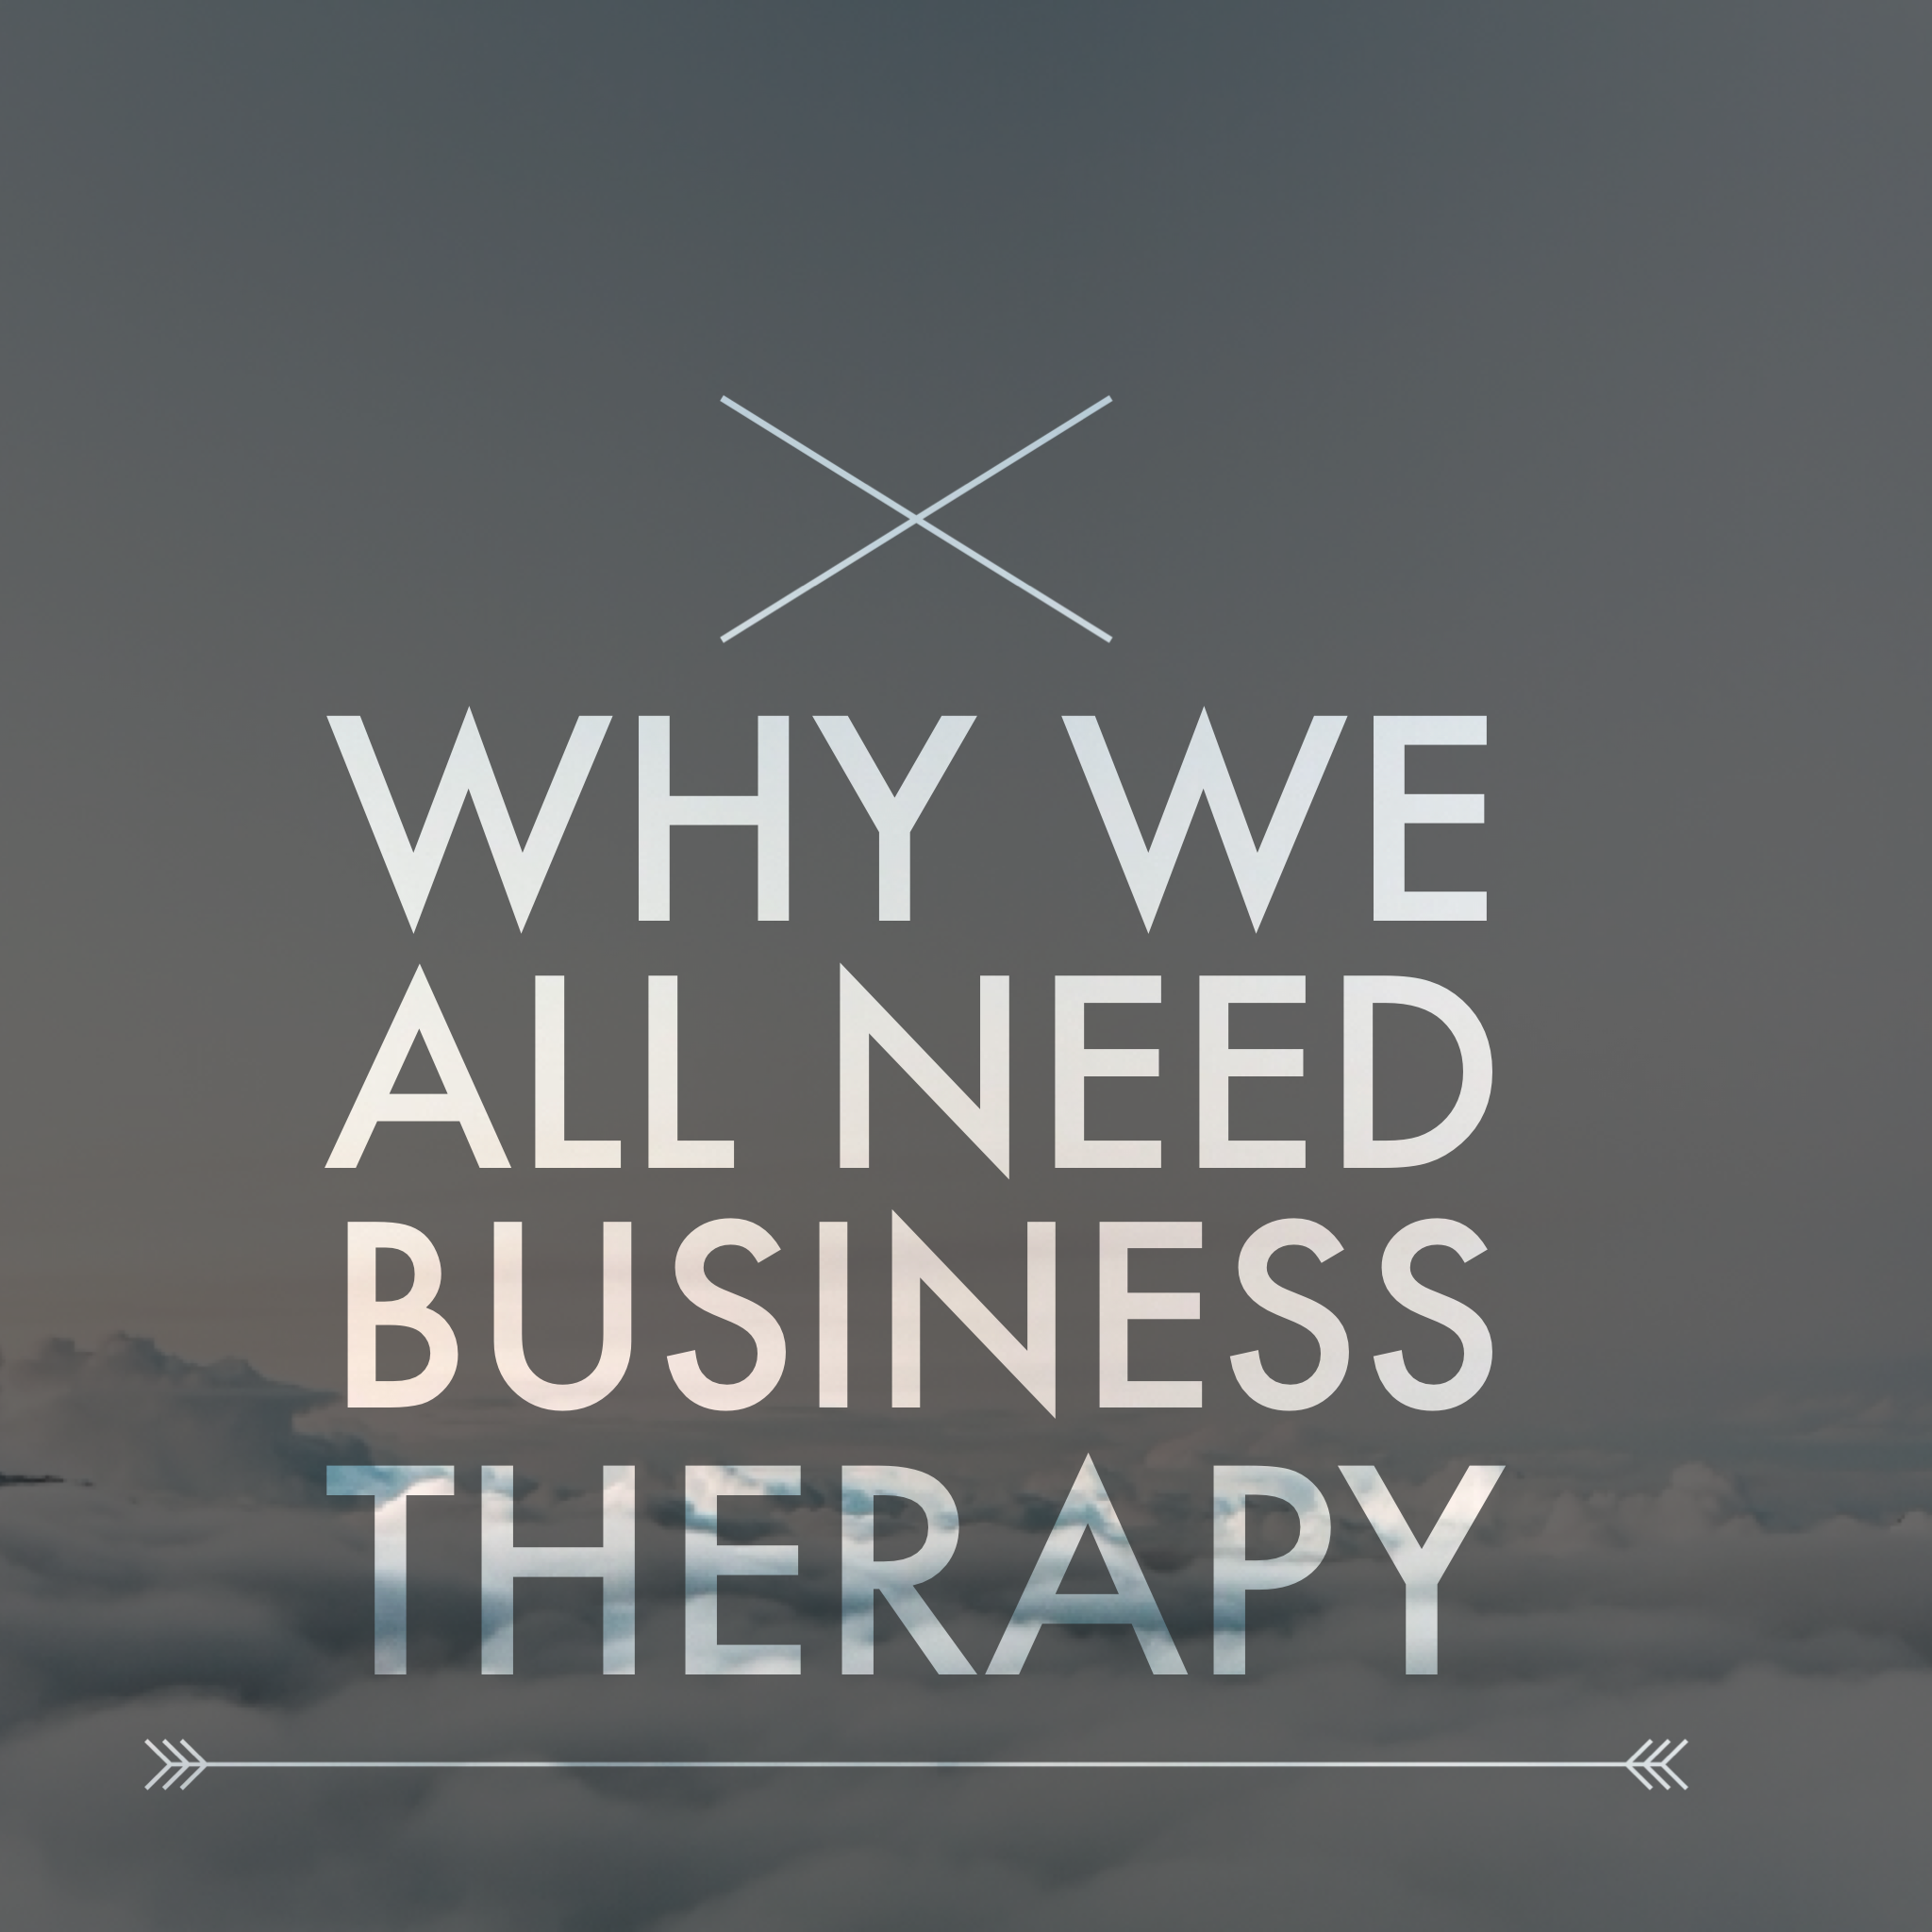 Business therapy for psychotherapists